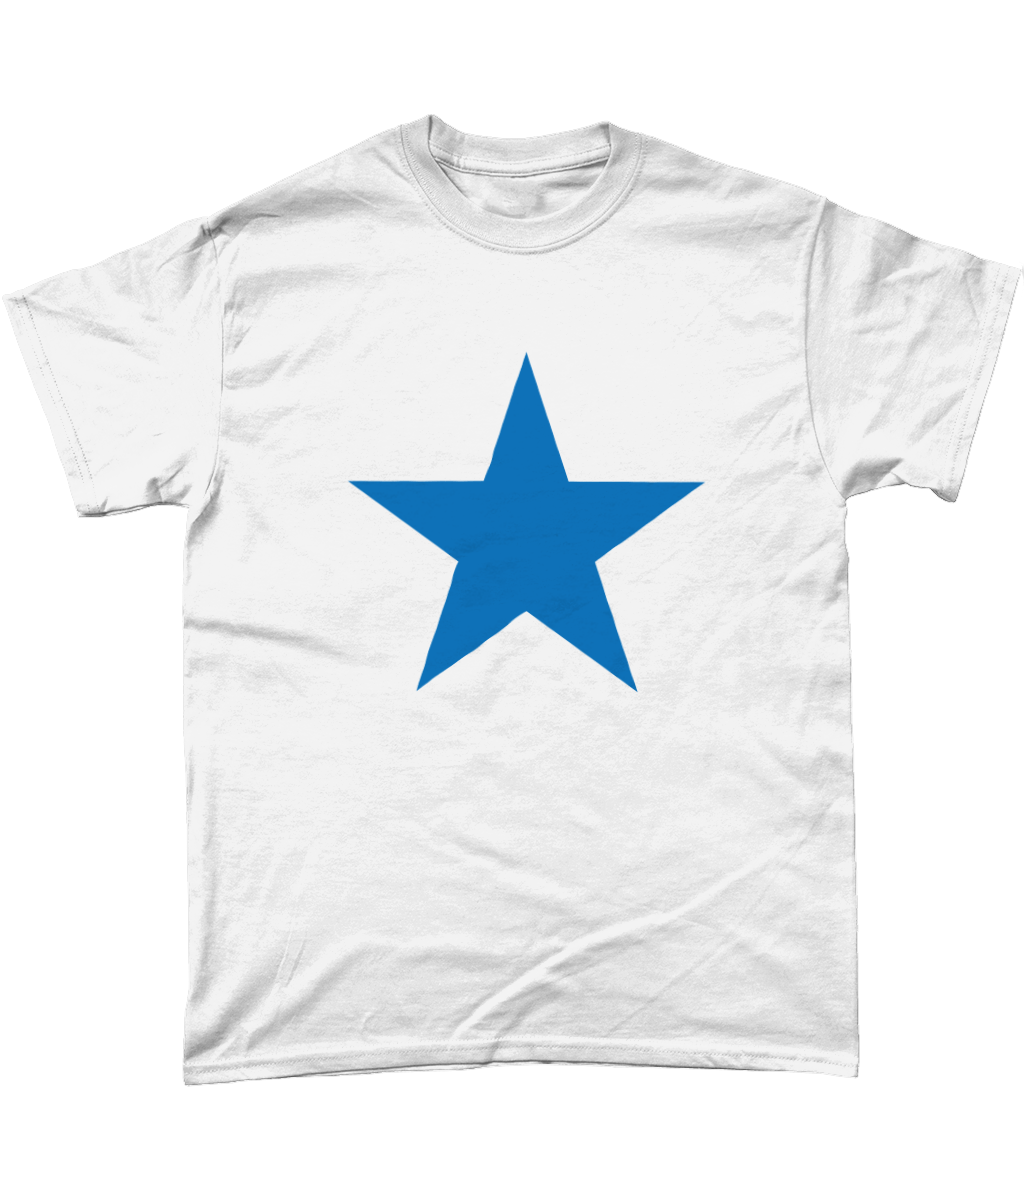 Newcastle Blue Star Mens T-Shirt